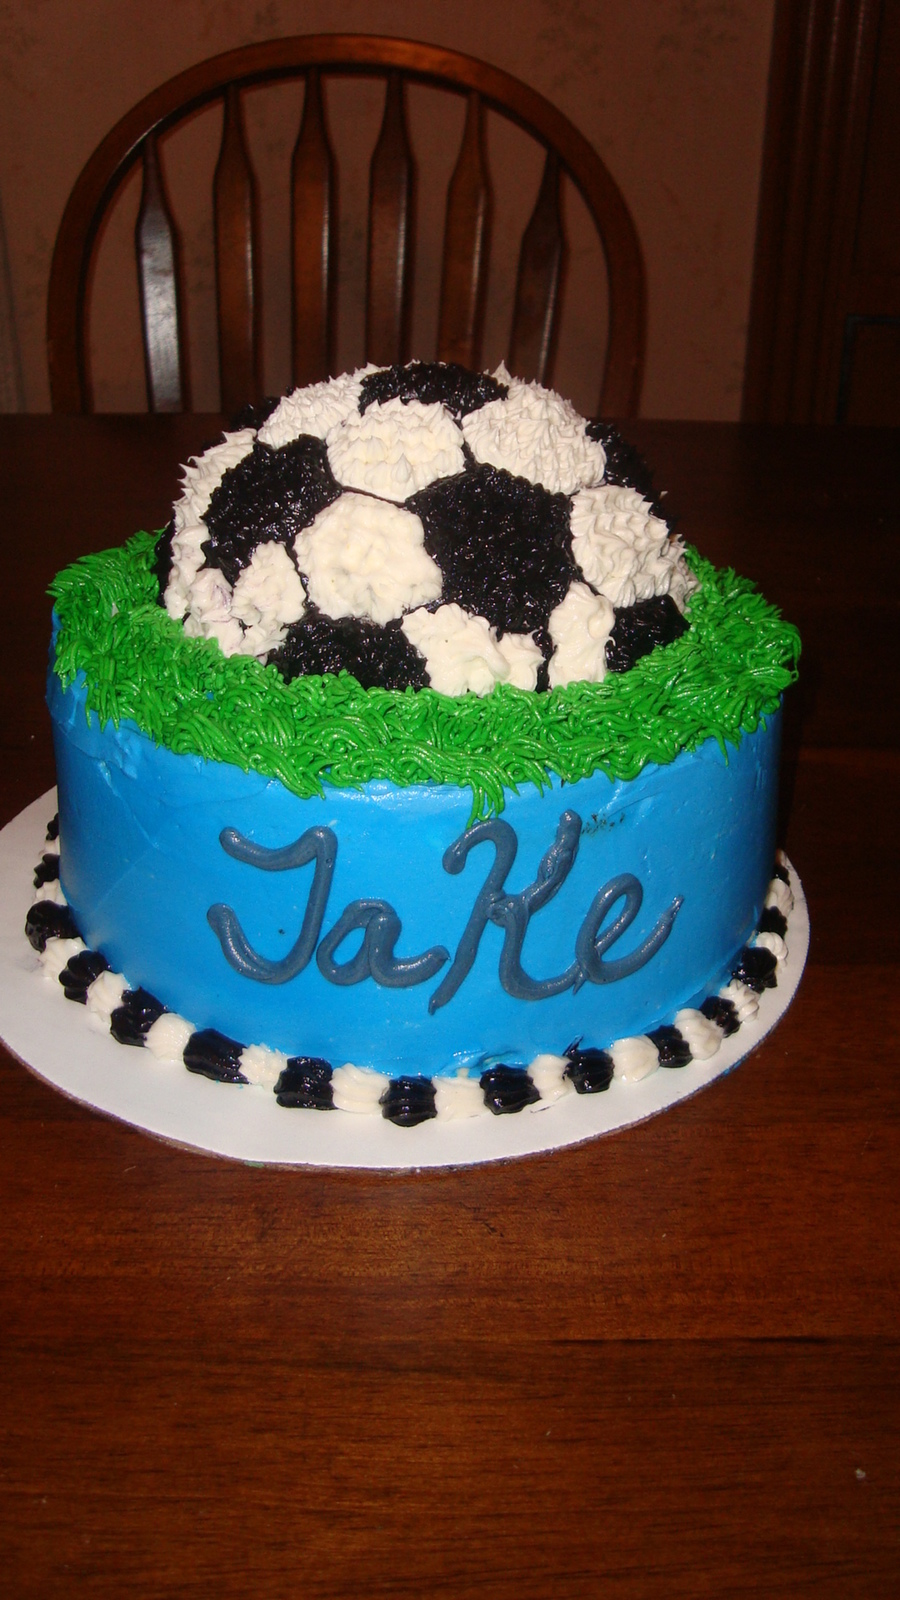 Soccer Birthday Cake Simple But Effective on Cake Central